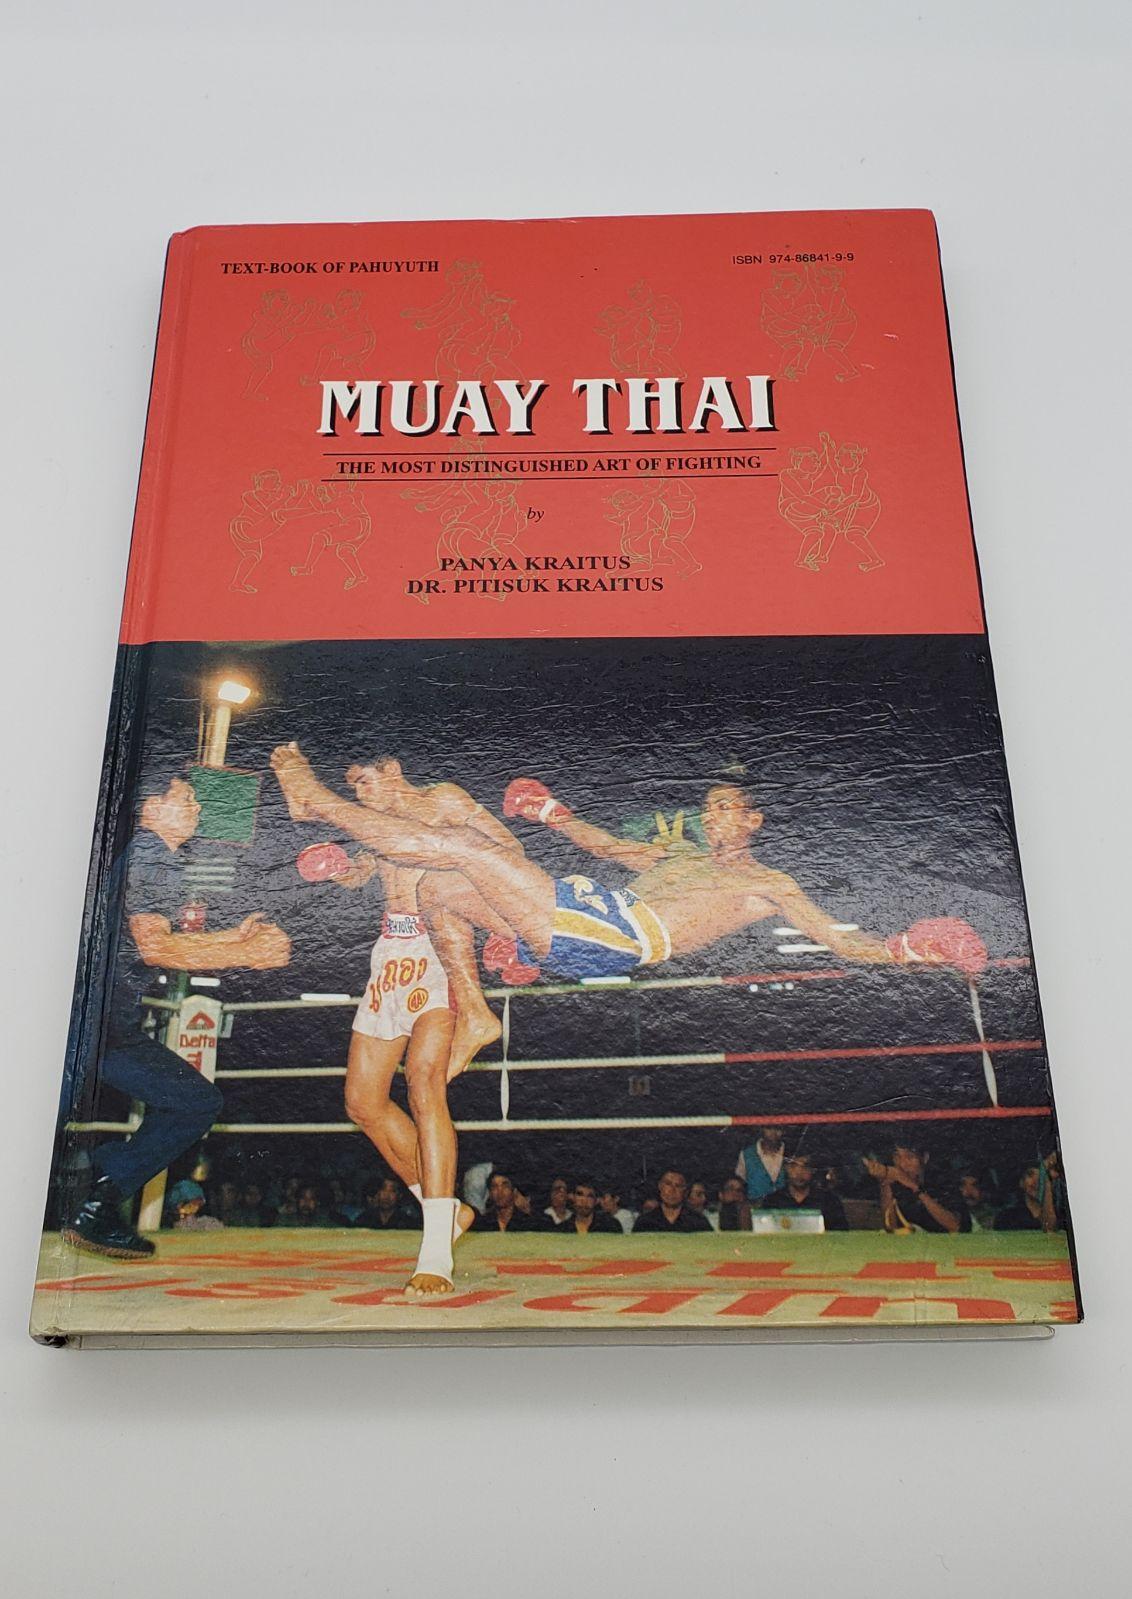 Muay Thai The Most Distinguished Art of